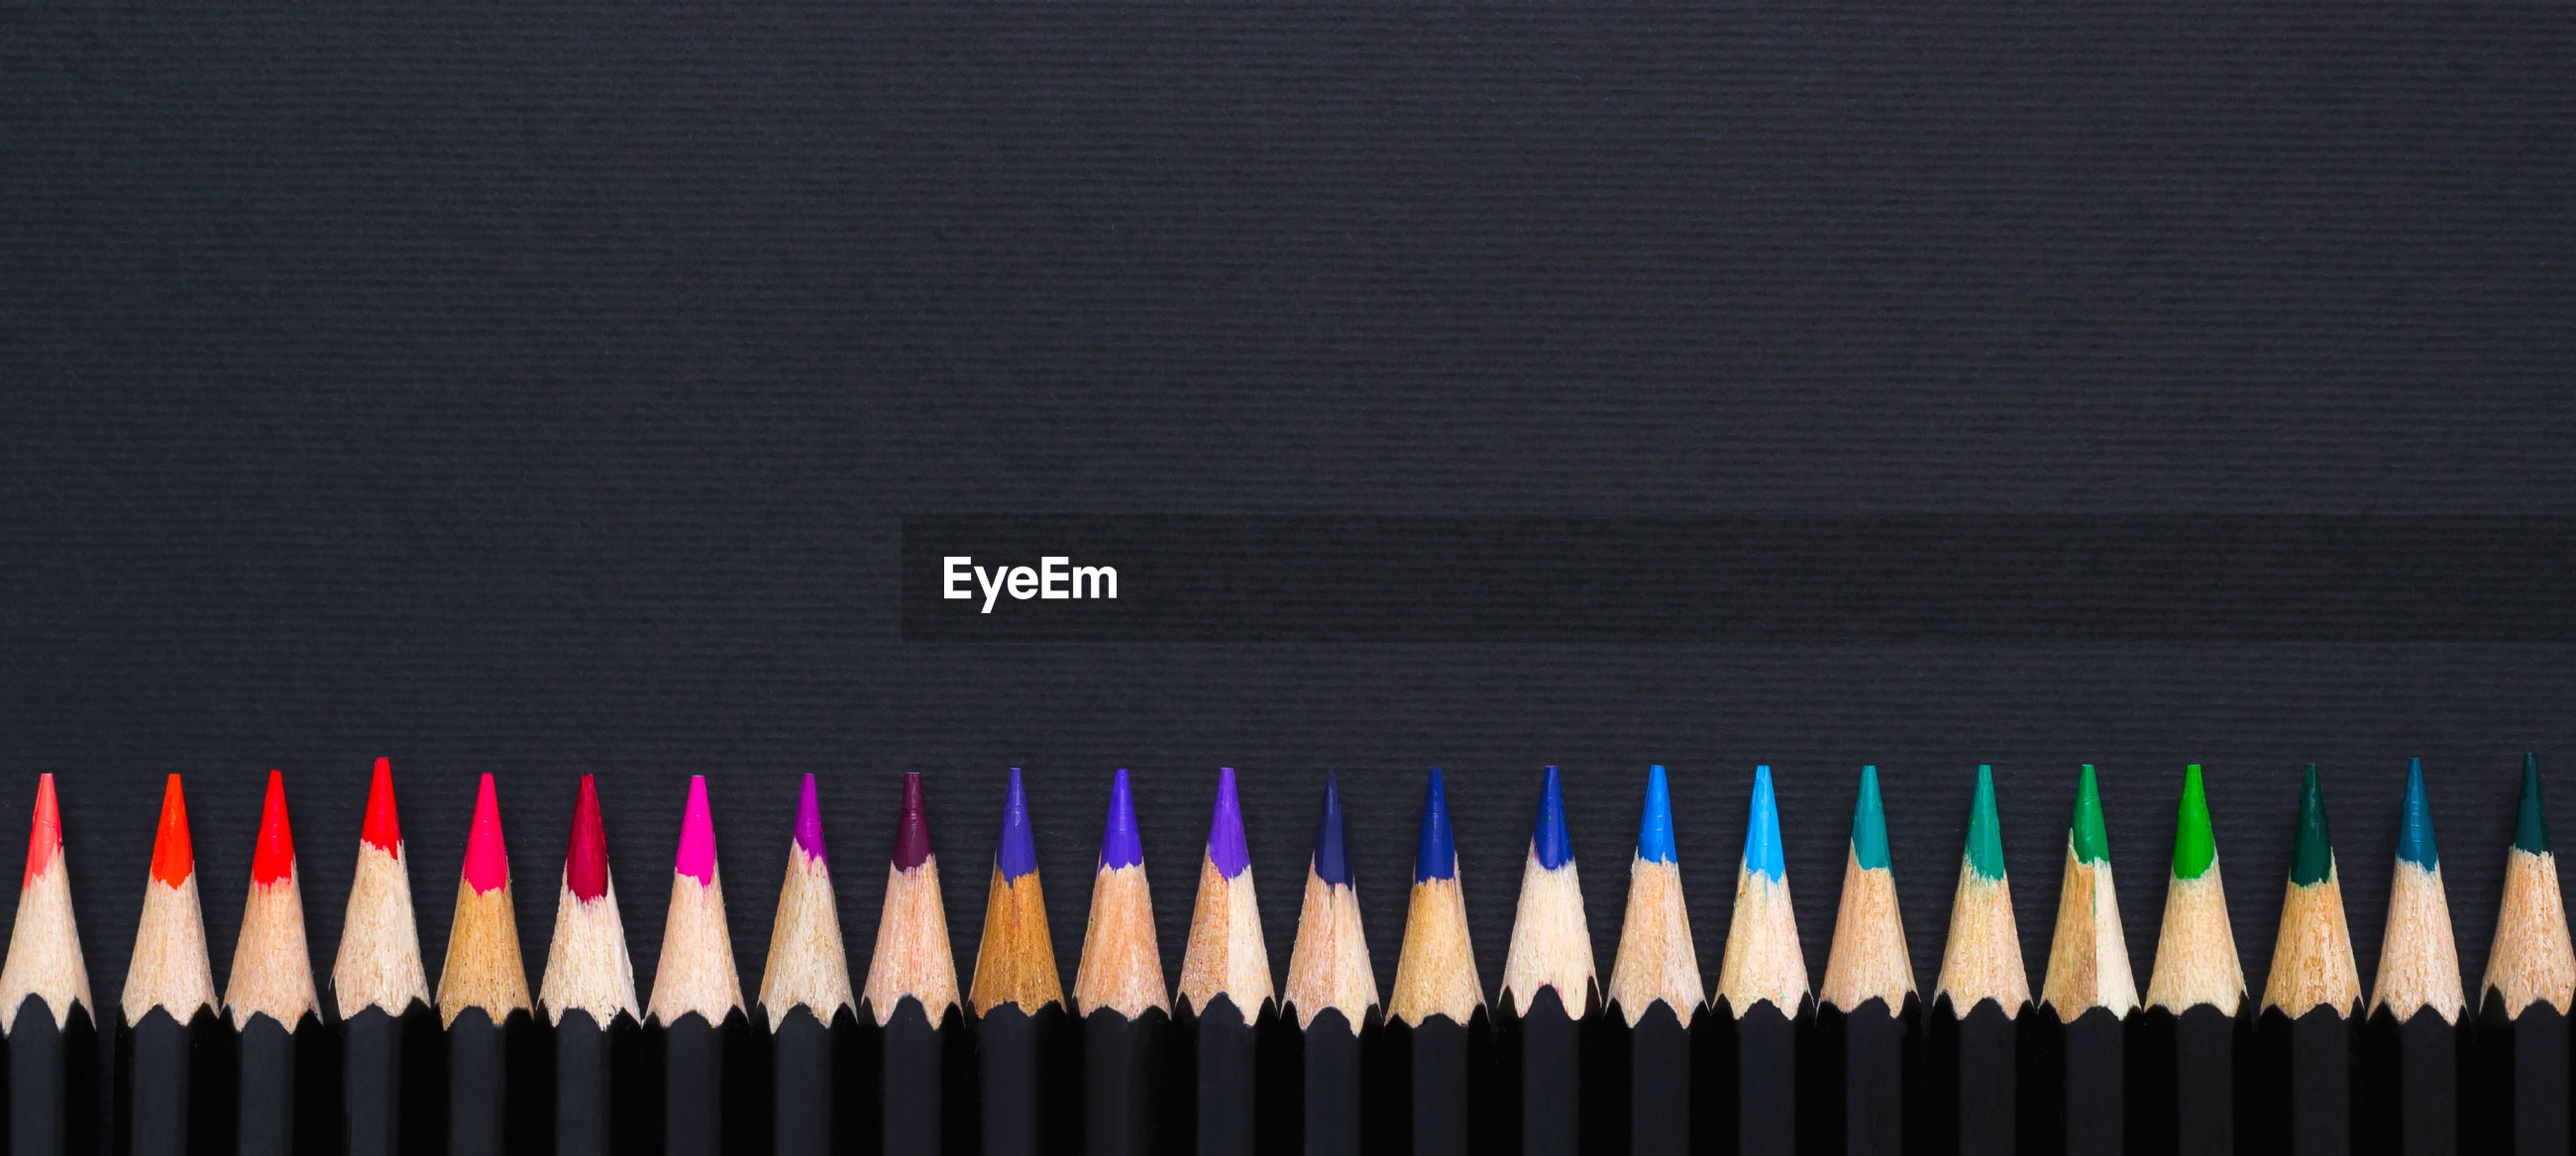 CLOSE-UP OF MULTI COLORED PENCILS IN BACKGROUND